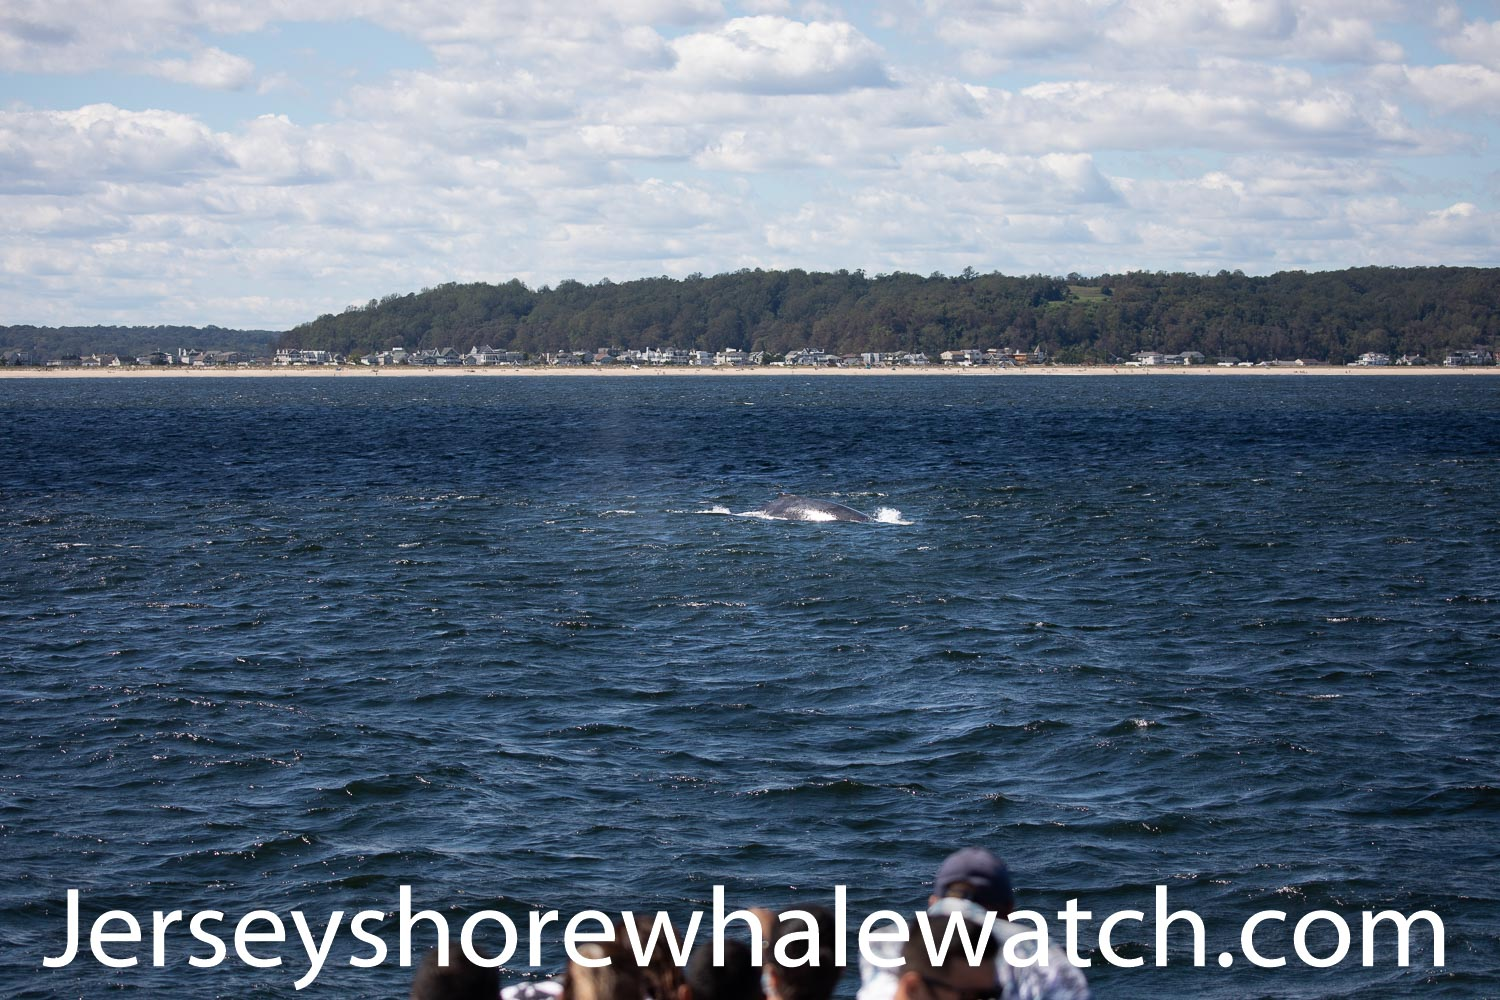 Humpback whale watching New York City 2020. Join us soon we go whale watching and we are the only ones who guarantee you will see a whale or your next trip is free!